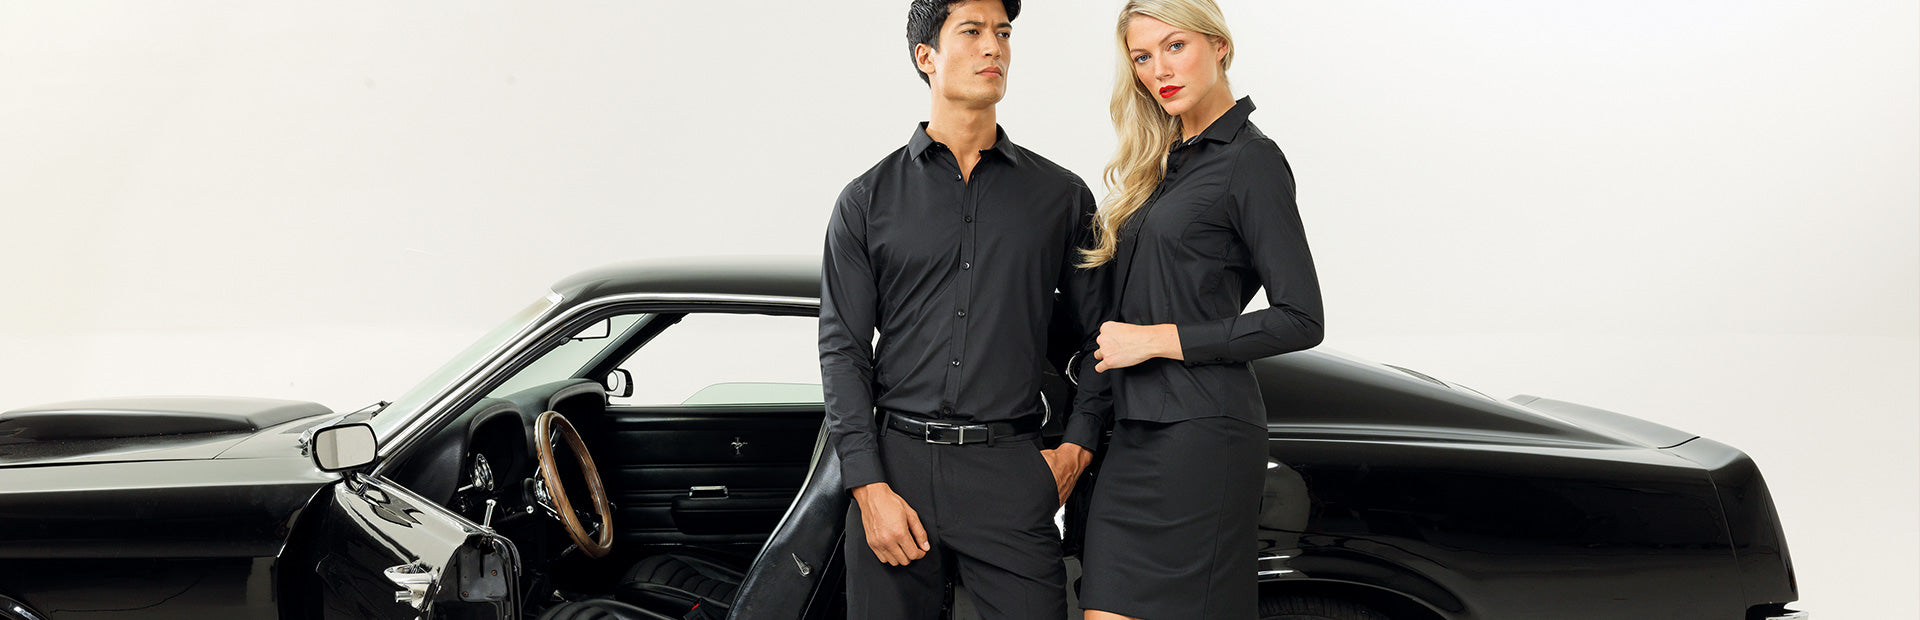 Premier clothing for business, hospitality, beauty, chefs